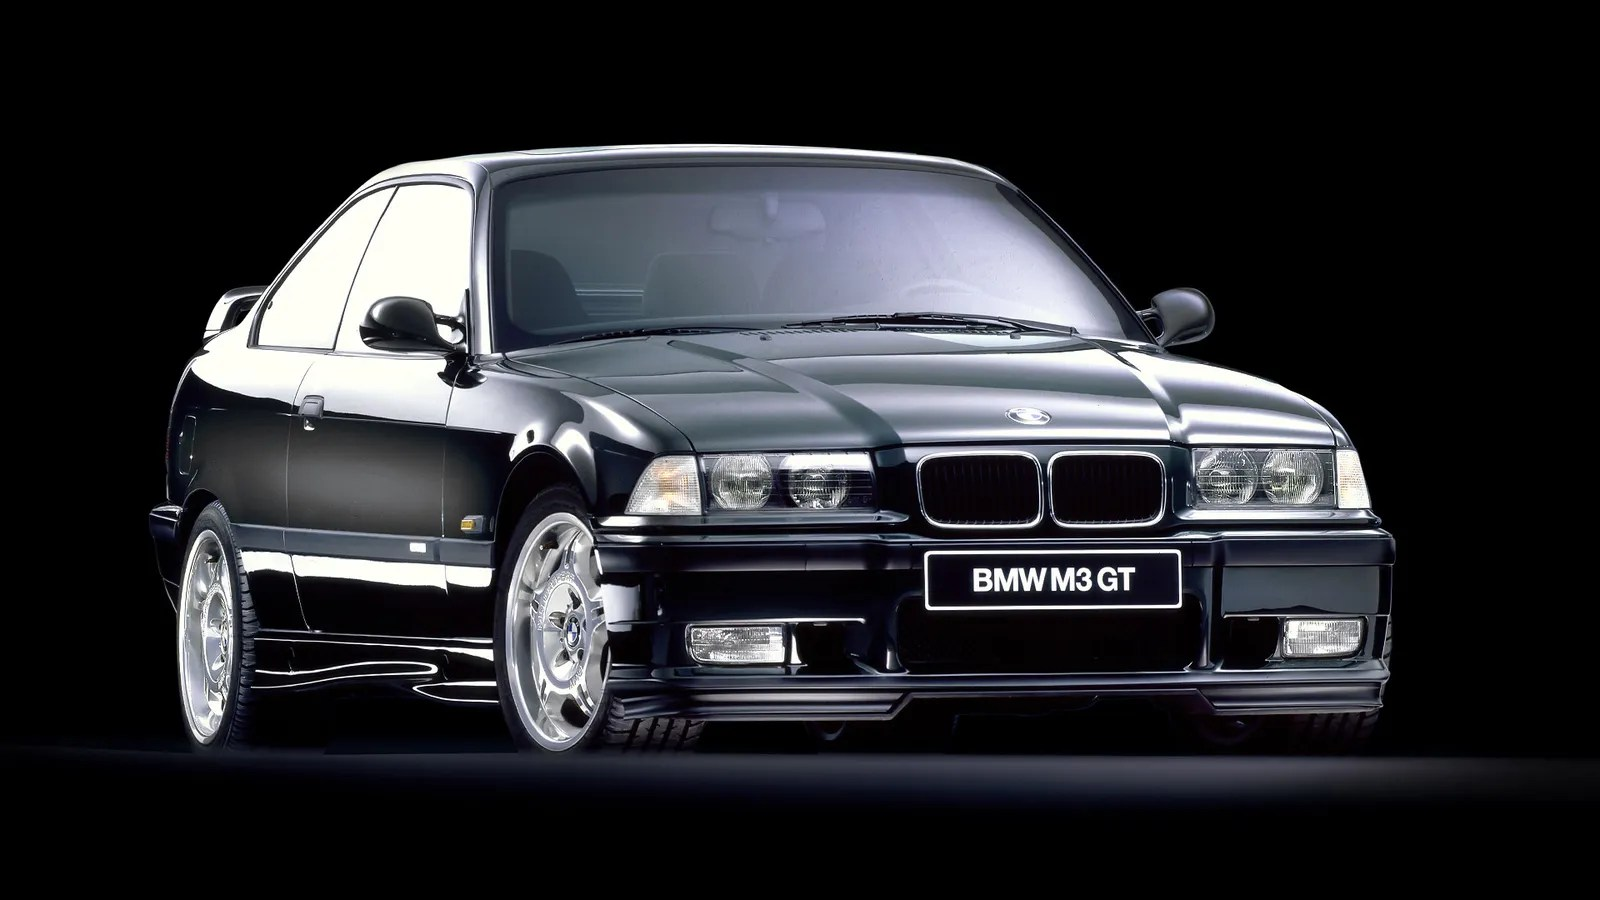 hight resolution of have you ever owned a bmw e36 m3 the worst m3 that everyone loves to hate